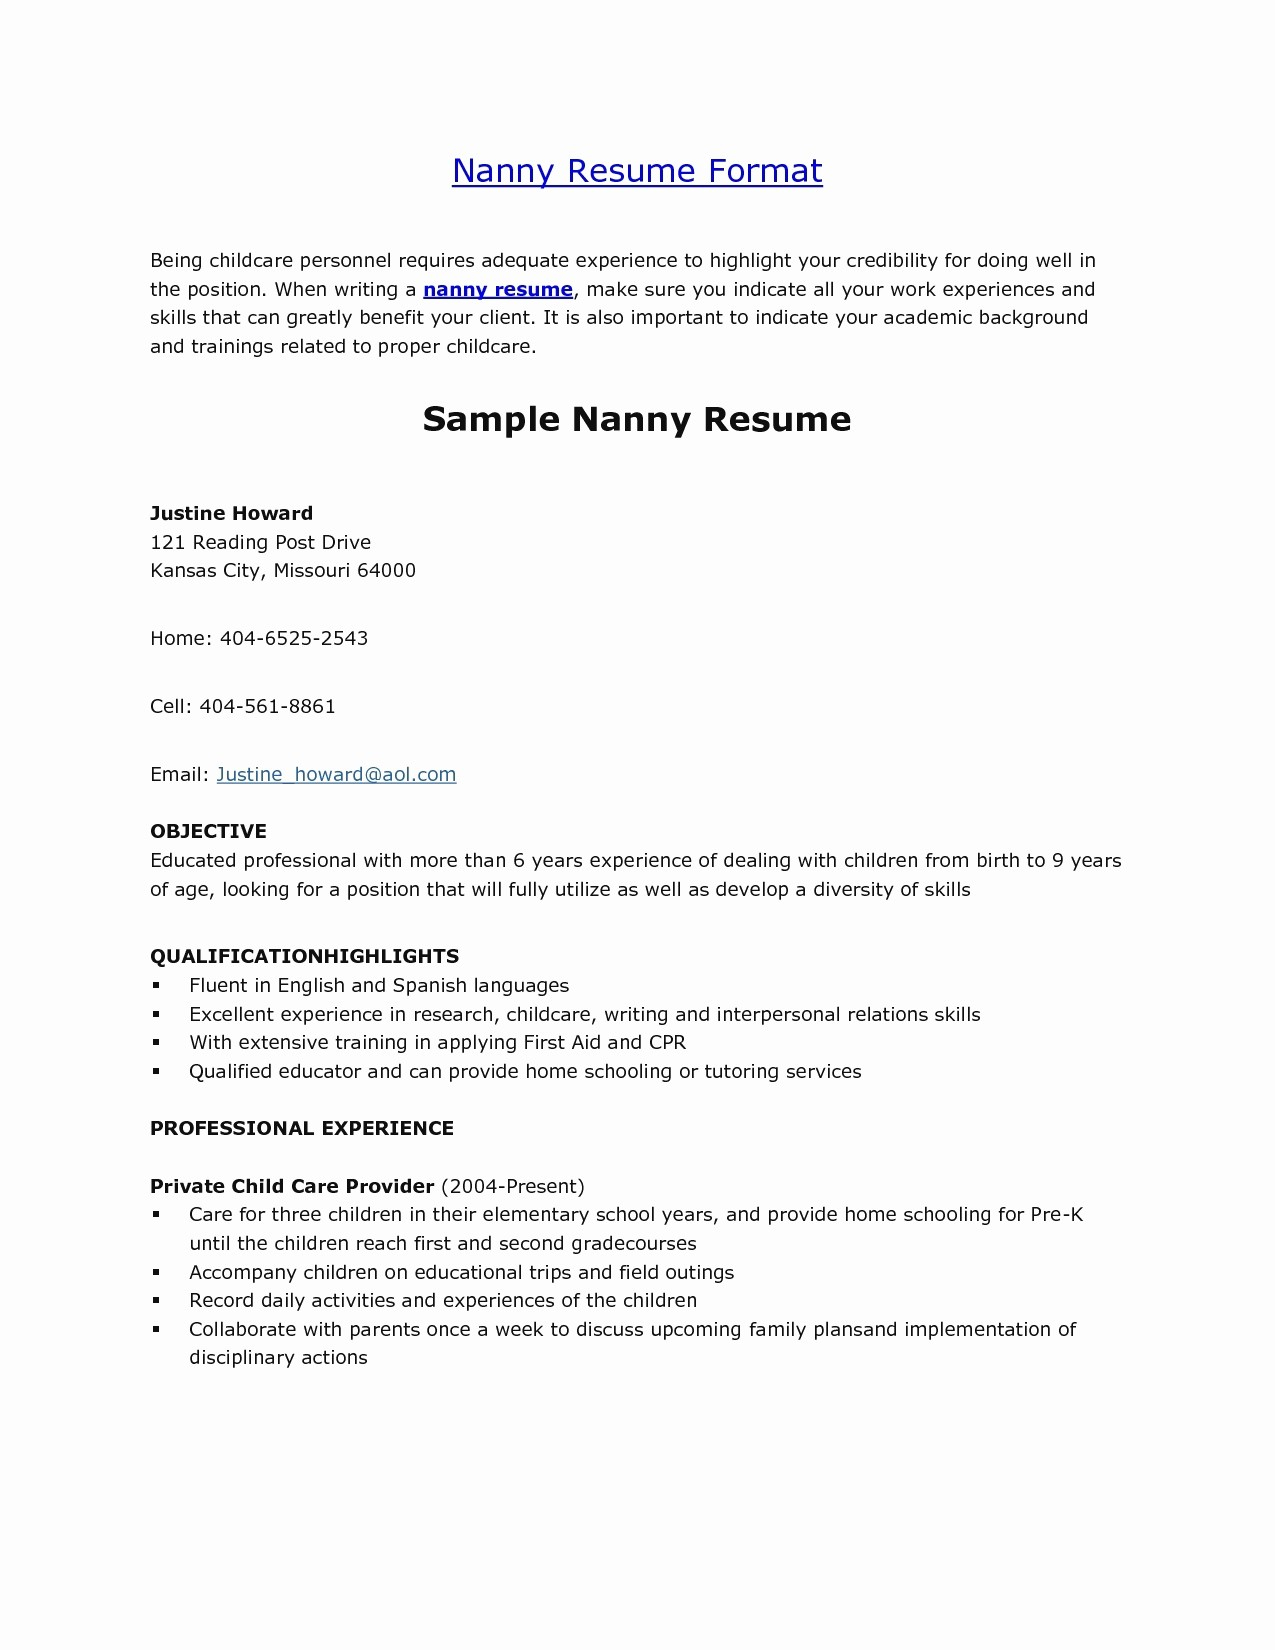 Peace Corps Resume Builder - Peace Corps Resume